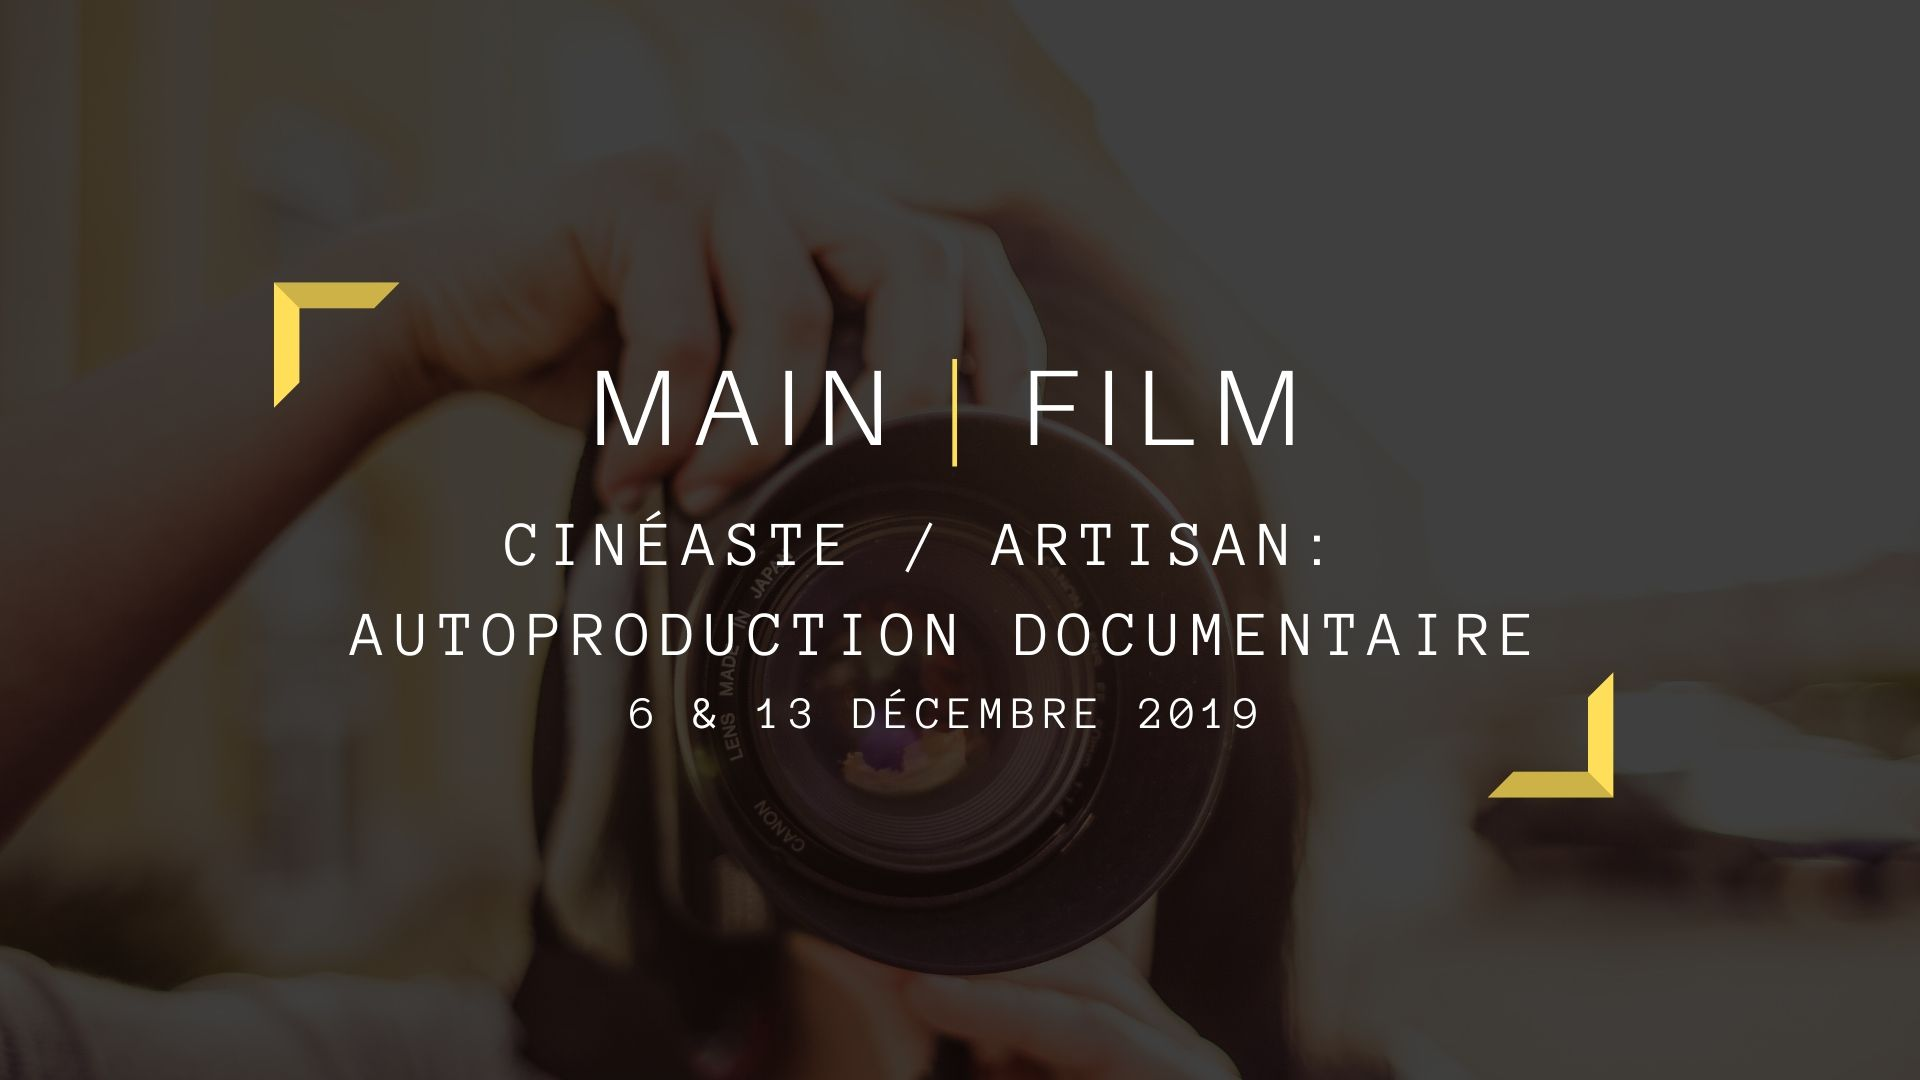 Autoproduction documentaire